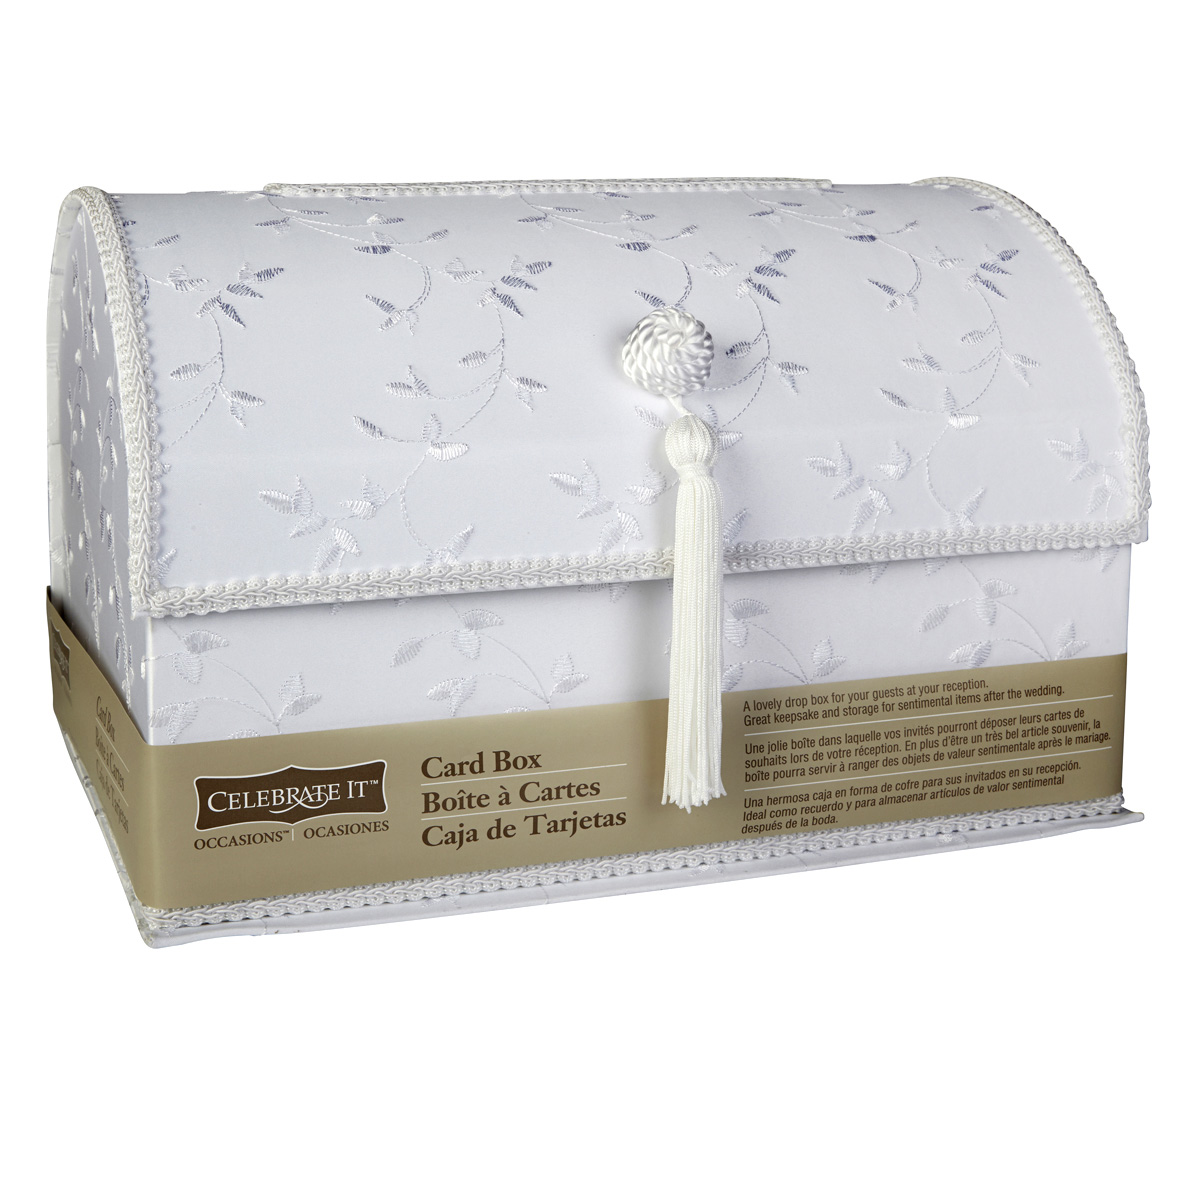 Favor Boxes From Michaels: Best ideas about handmade wedding favors on.